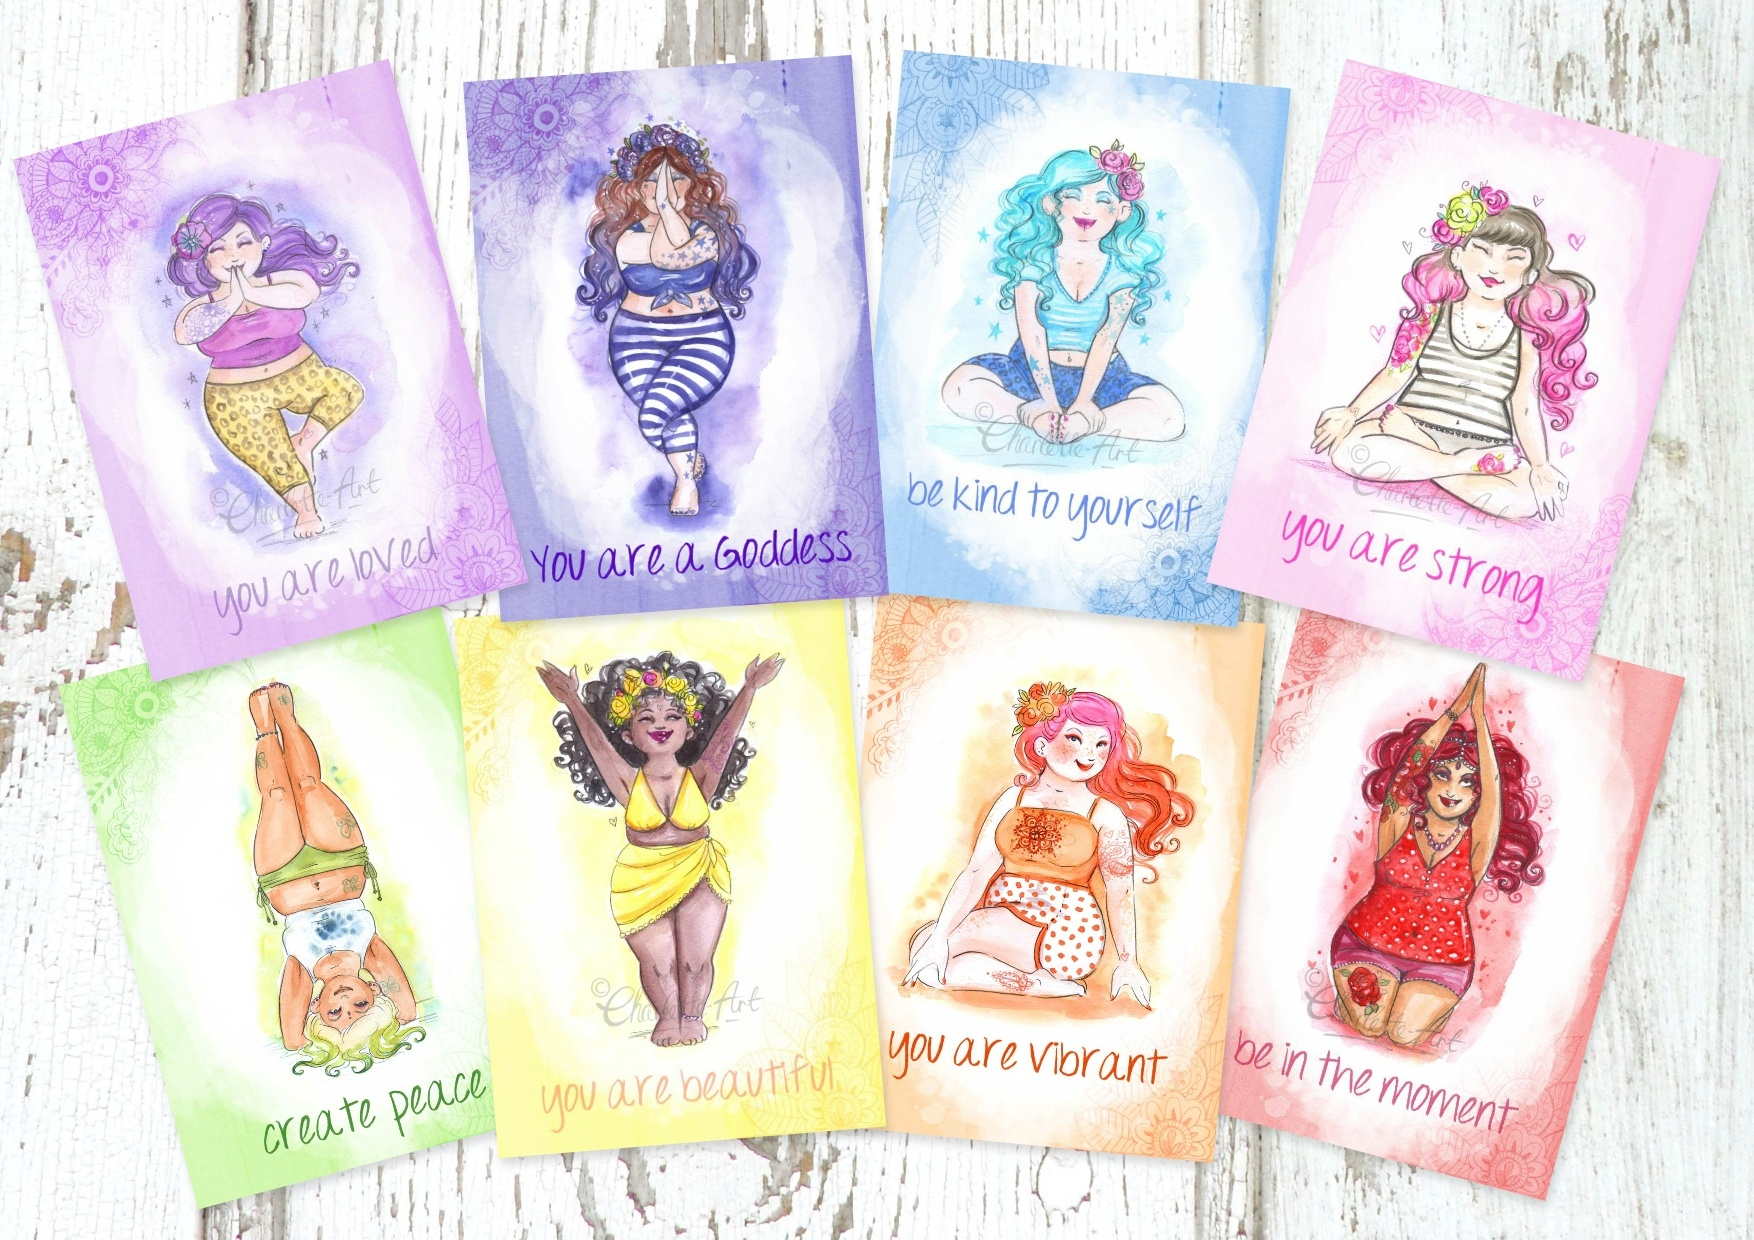 A set of 8 postcards featurings Charlottes paintings of women doing yoga, each one is a different colour of the rainbow.